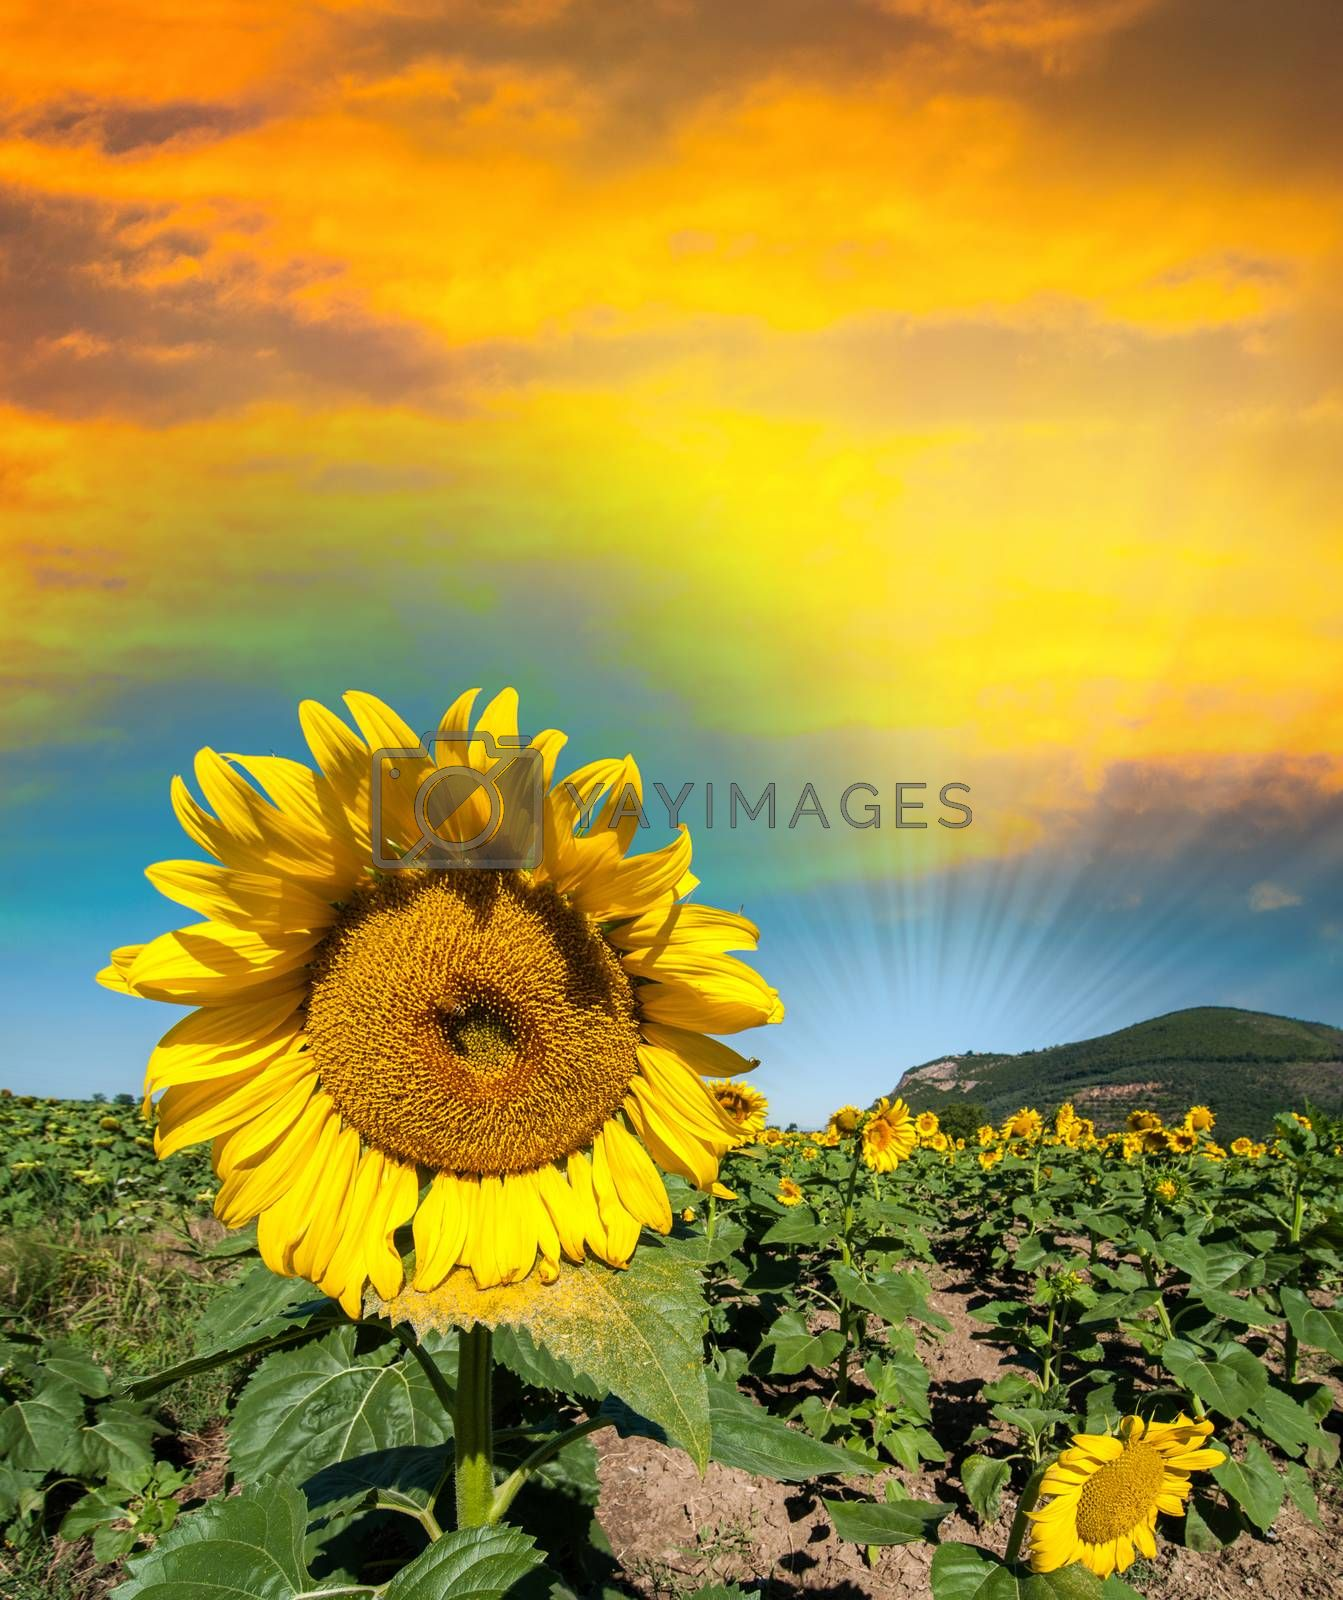 Beautiful sunflower on a field in summer by jovannig